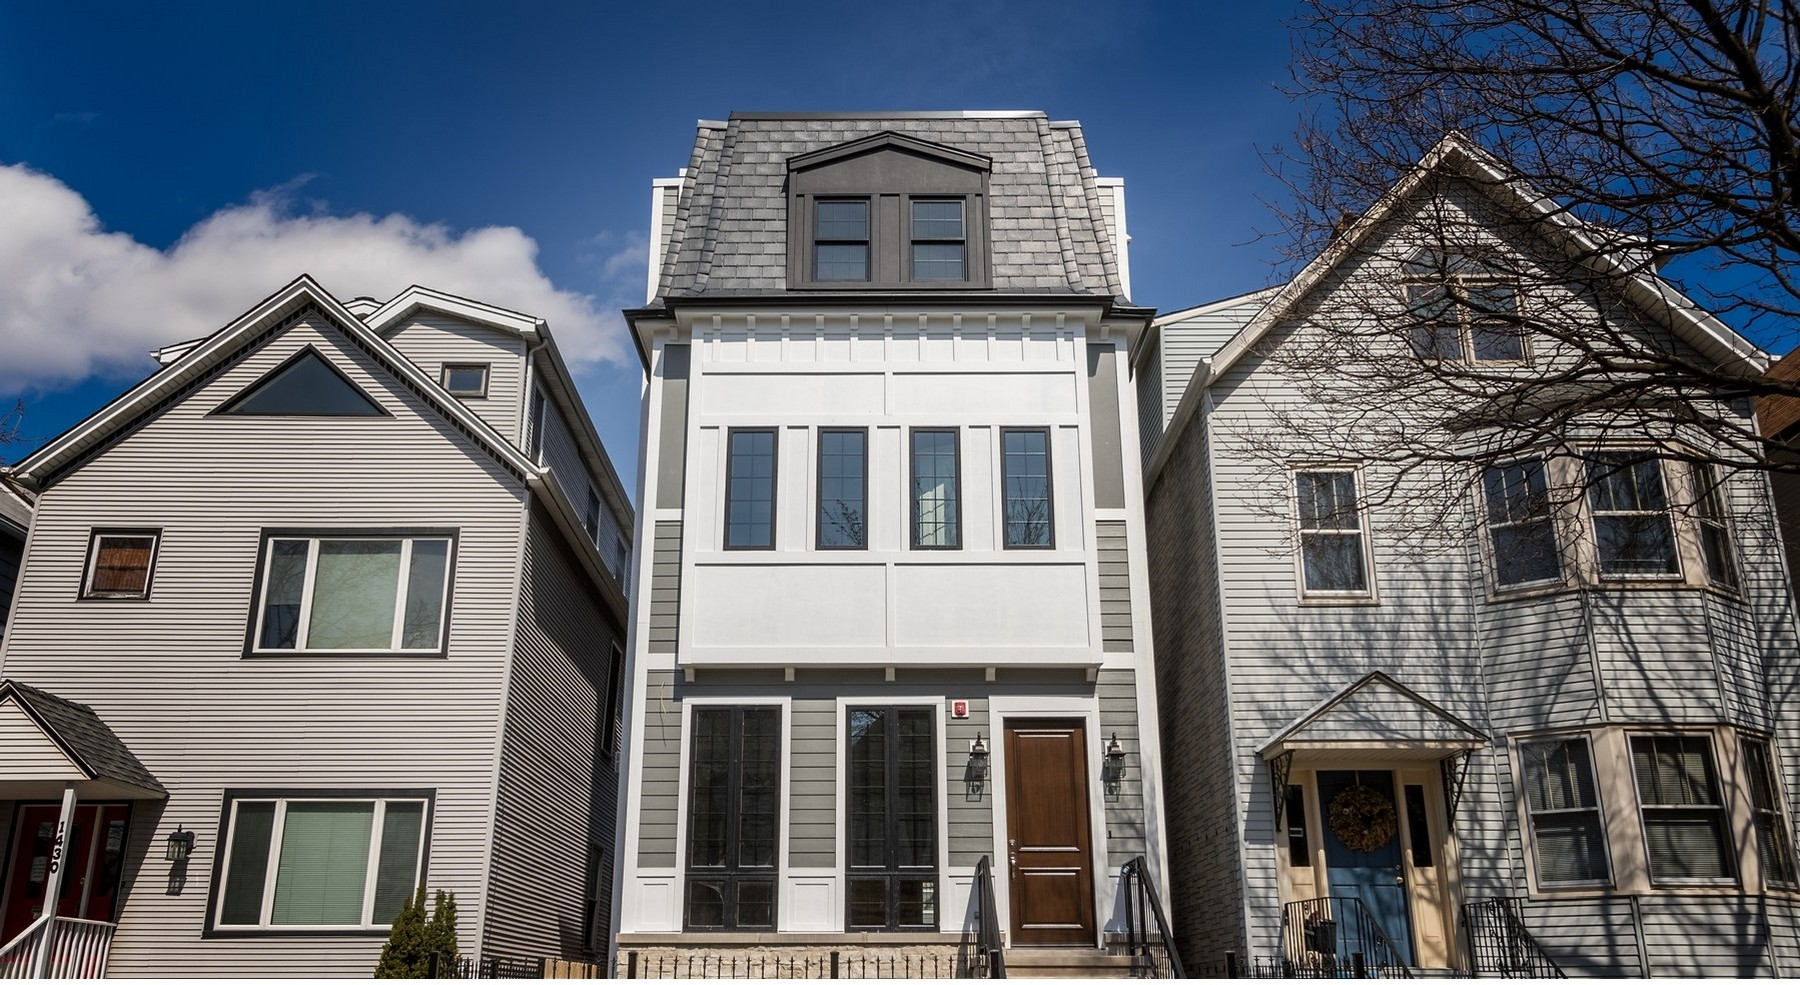 Single Family Home for Sale at Outstanding New Burley School Home 1428 W George Street Lakeview, Chicago, Illinois, 60657 United States